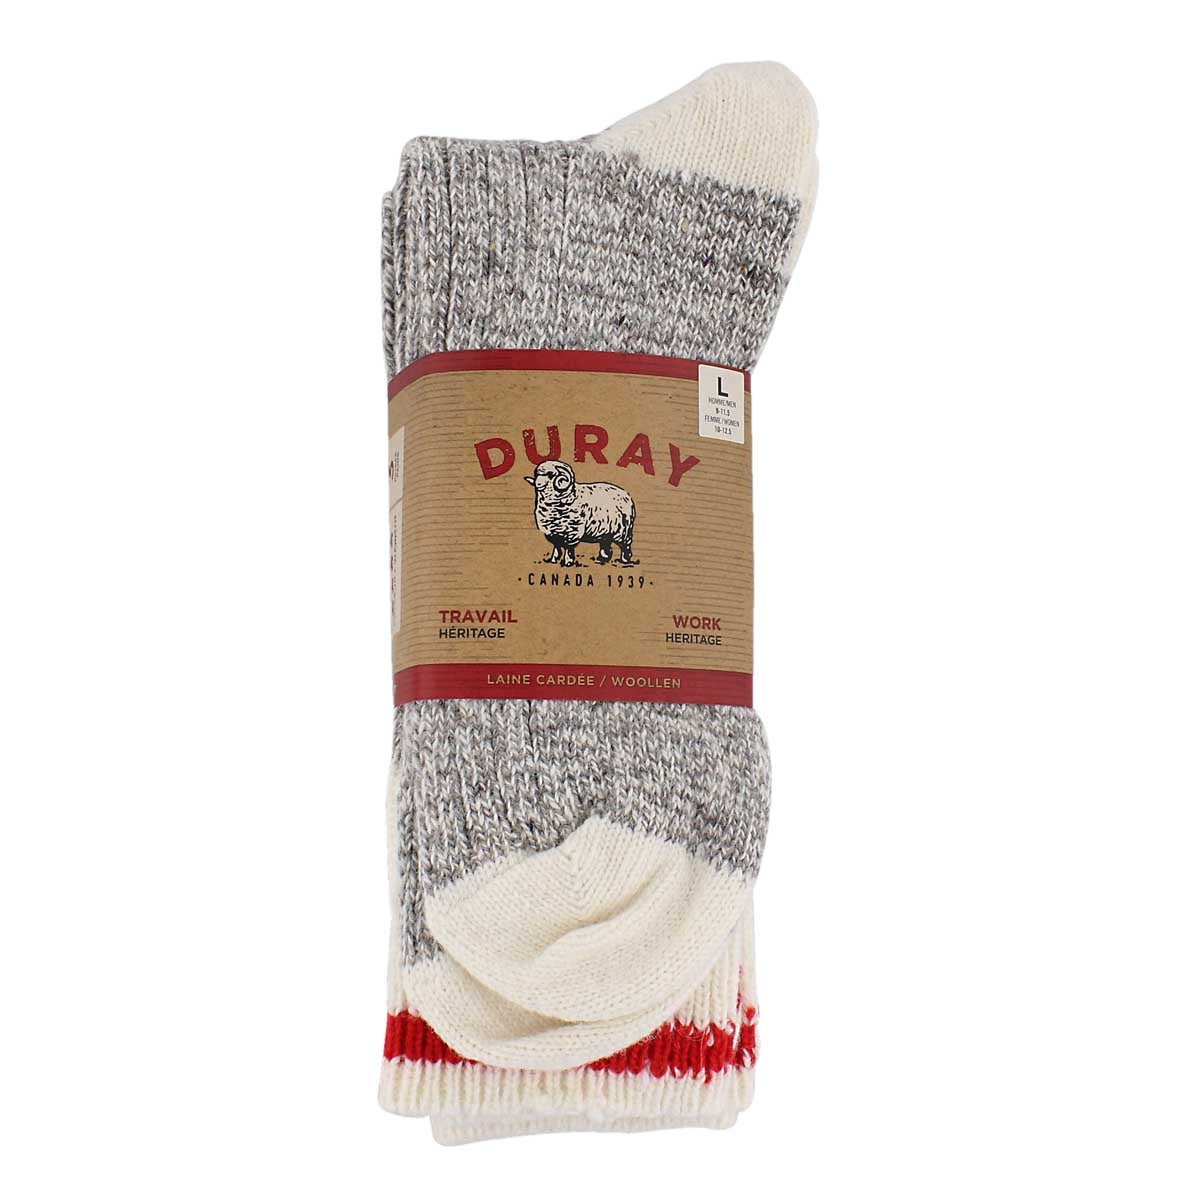 Mns Duray grey/wht wool blend sock-3 pk